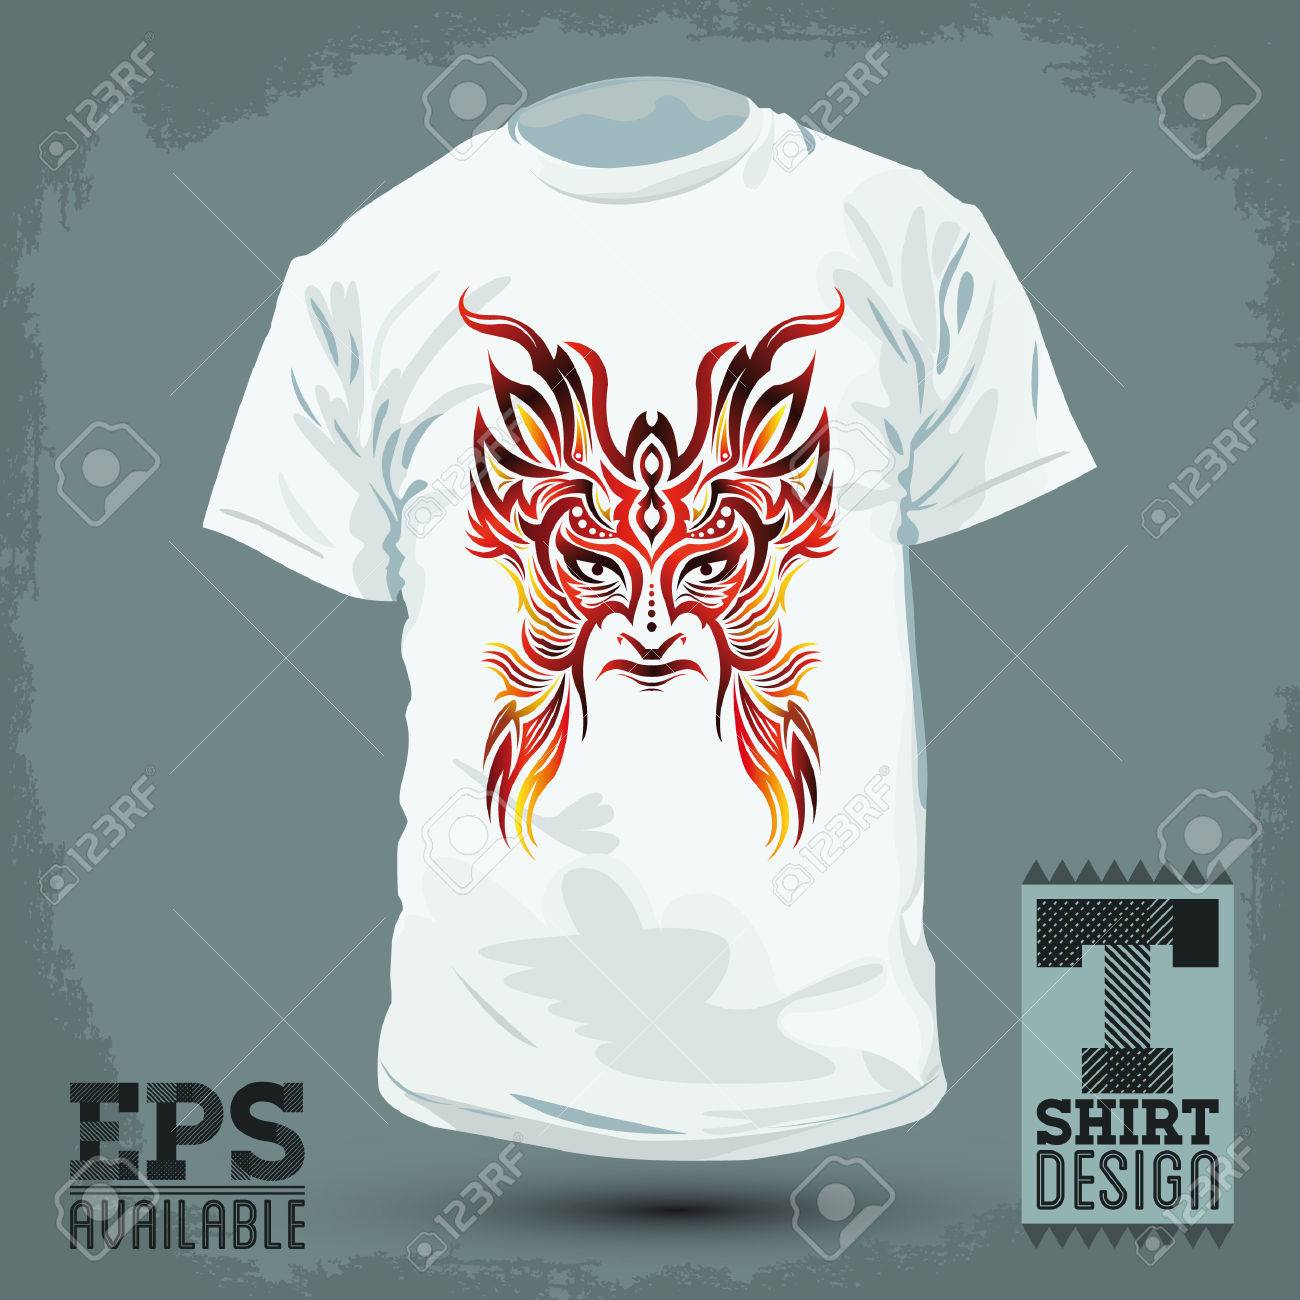 e3b32aa4 Graphic T-shirt design -Colorful Tribal mask - vector illustration Stock  Vector - 27700547